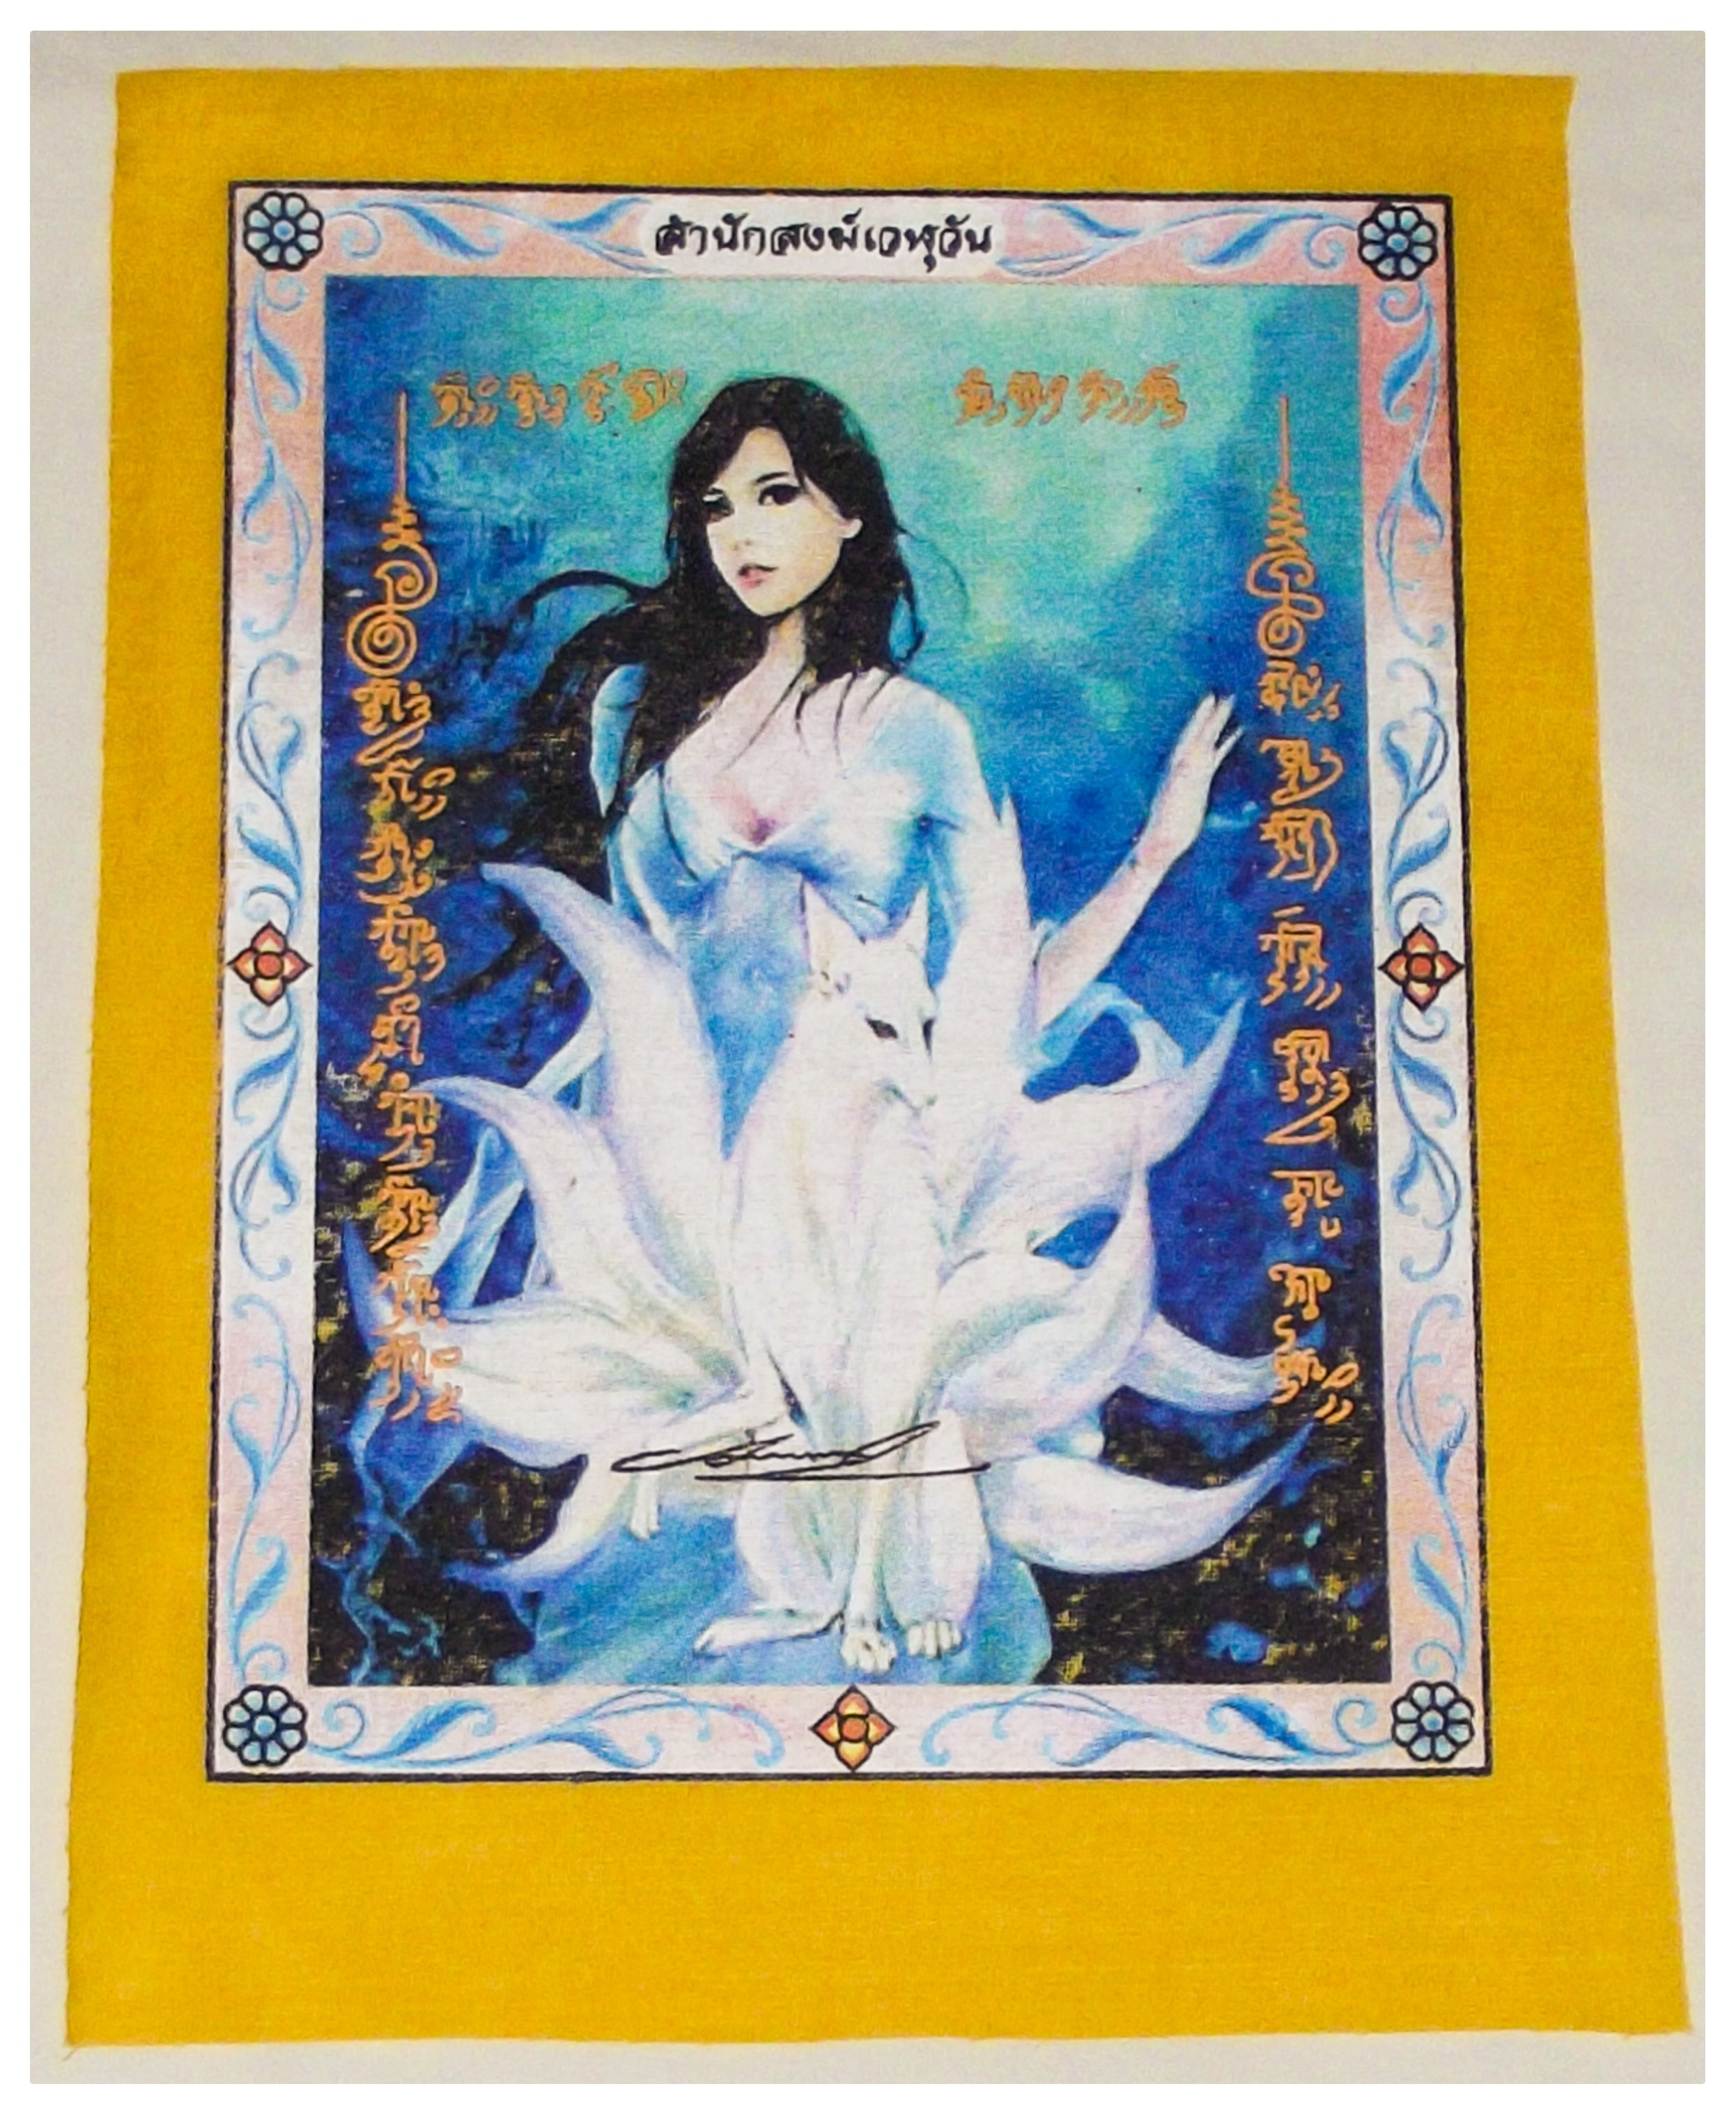 9 Tailed Fox Demoness Enchantress Yantra Cloth